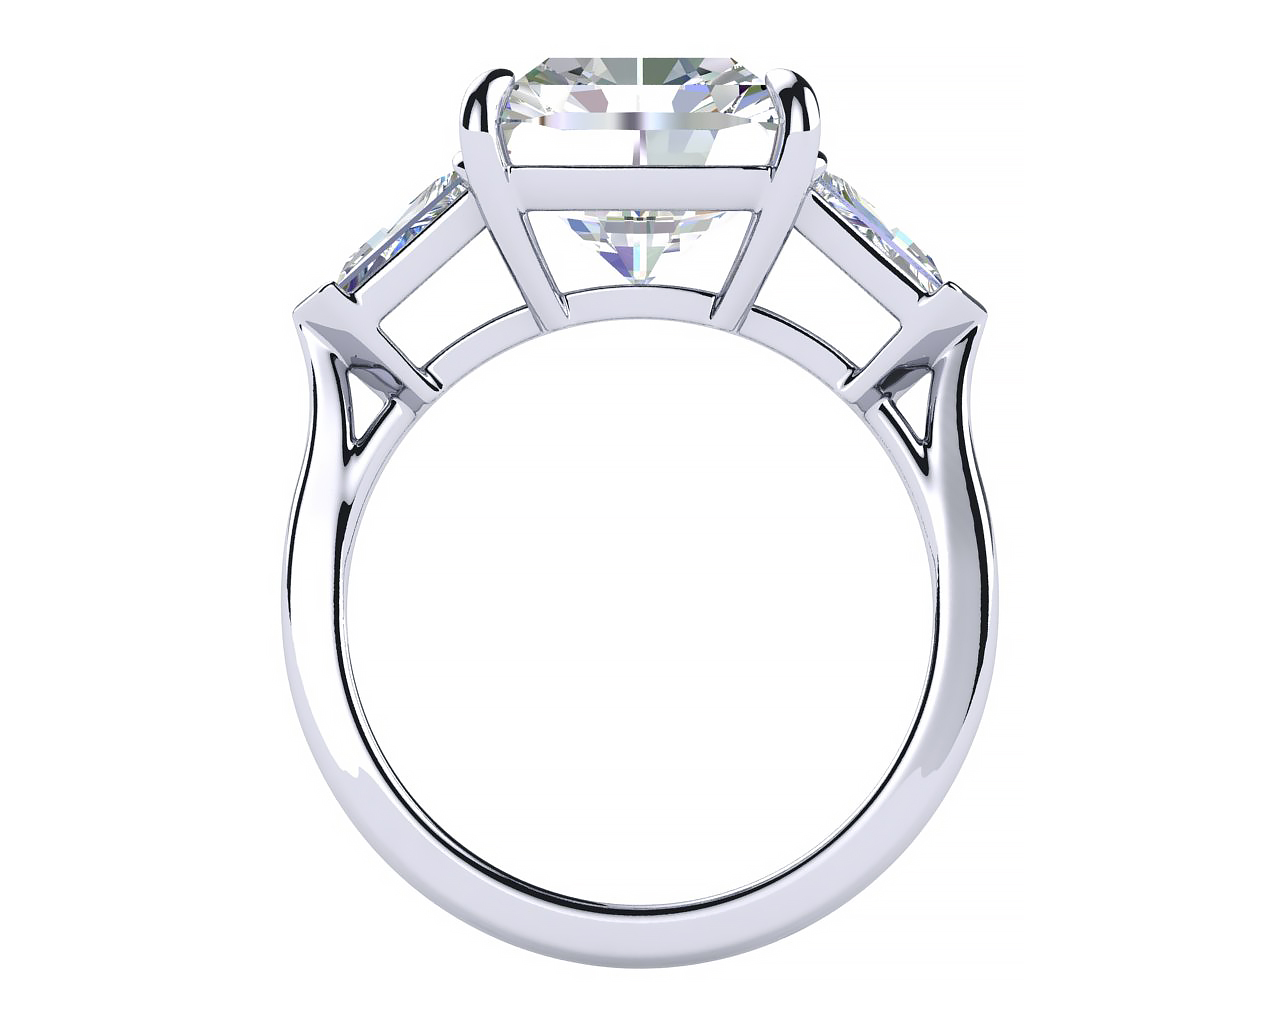 Diamond Engagement Ring Cross Section  View